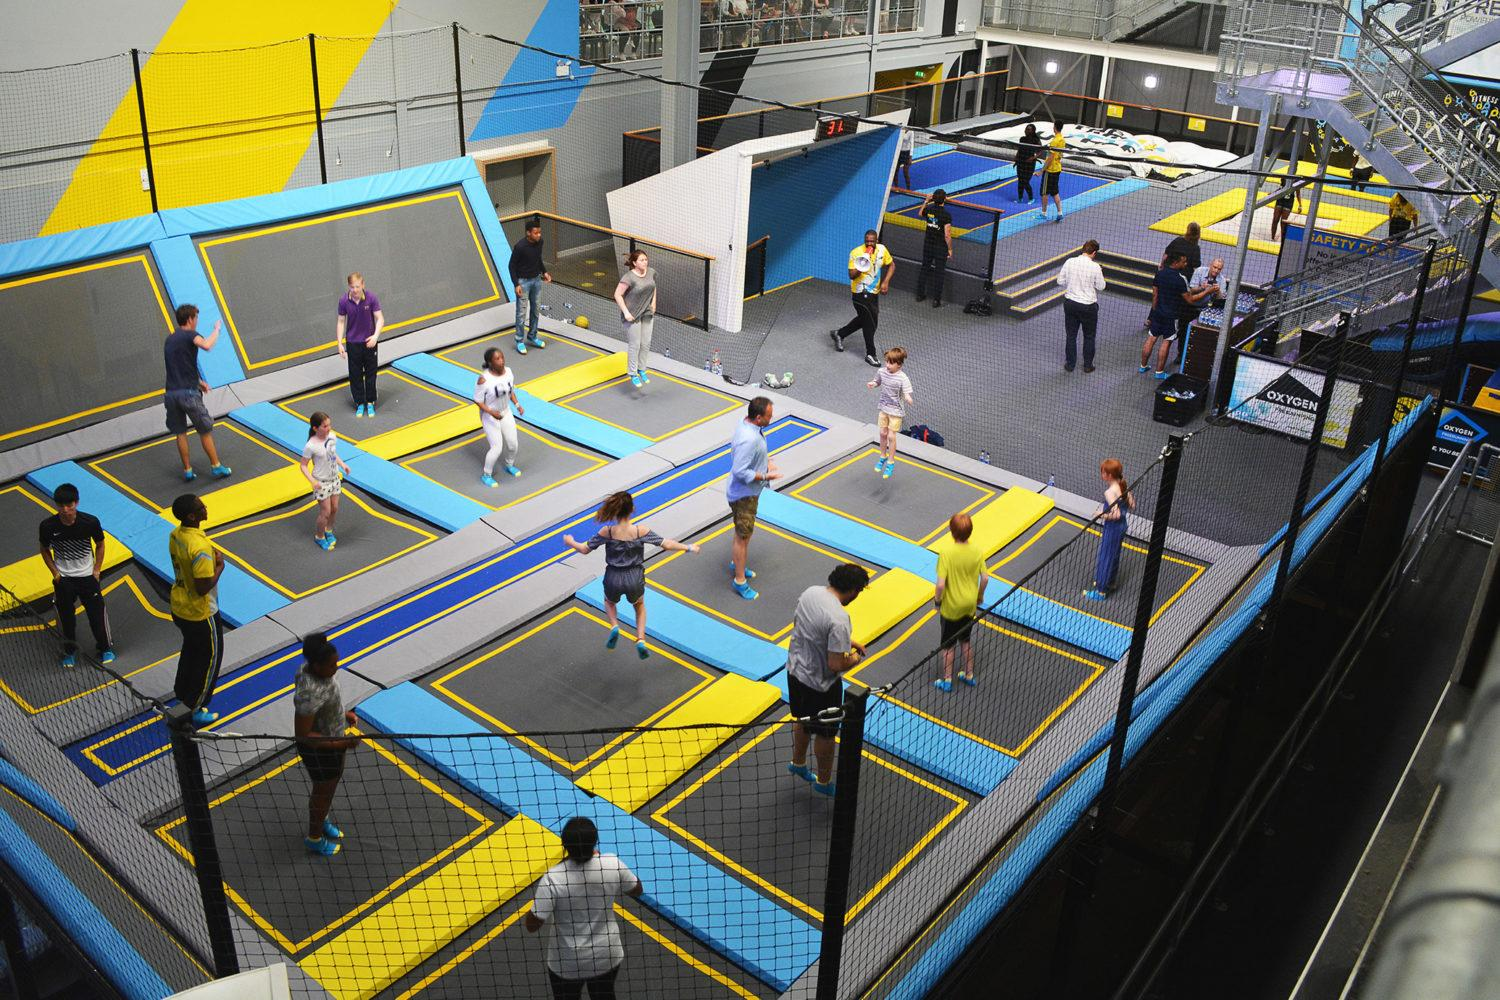 Oxygen also recently opened new venues in Stevenage and Wolverhampton. / Courtesy of Oxygen Freejumping